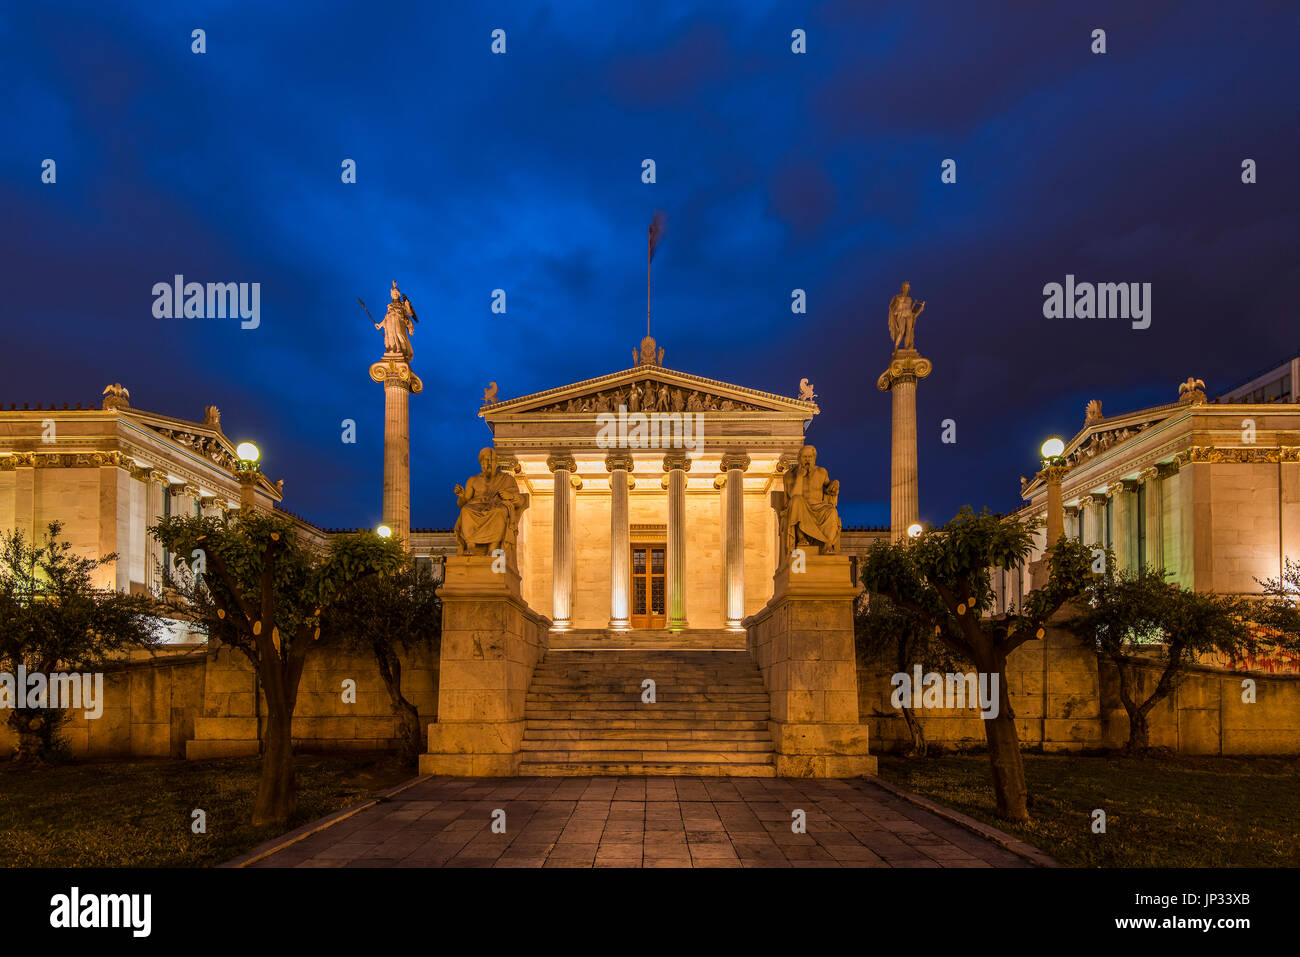 Night view of the main building of the Academy of Athens, Athens, Attica, Greece - Stock Image